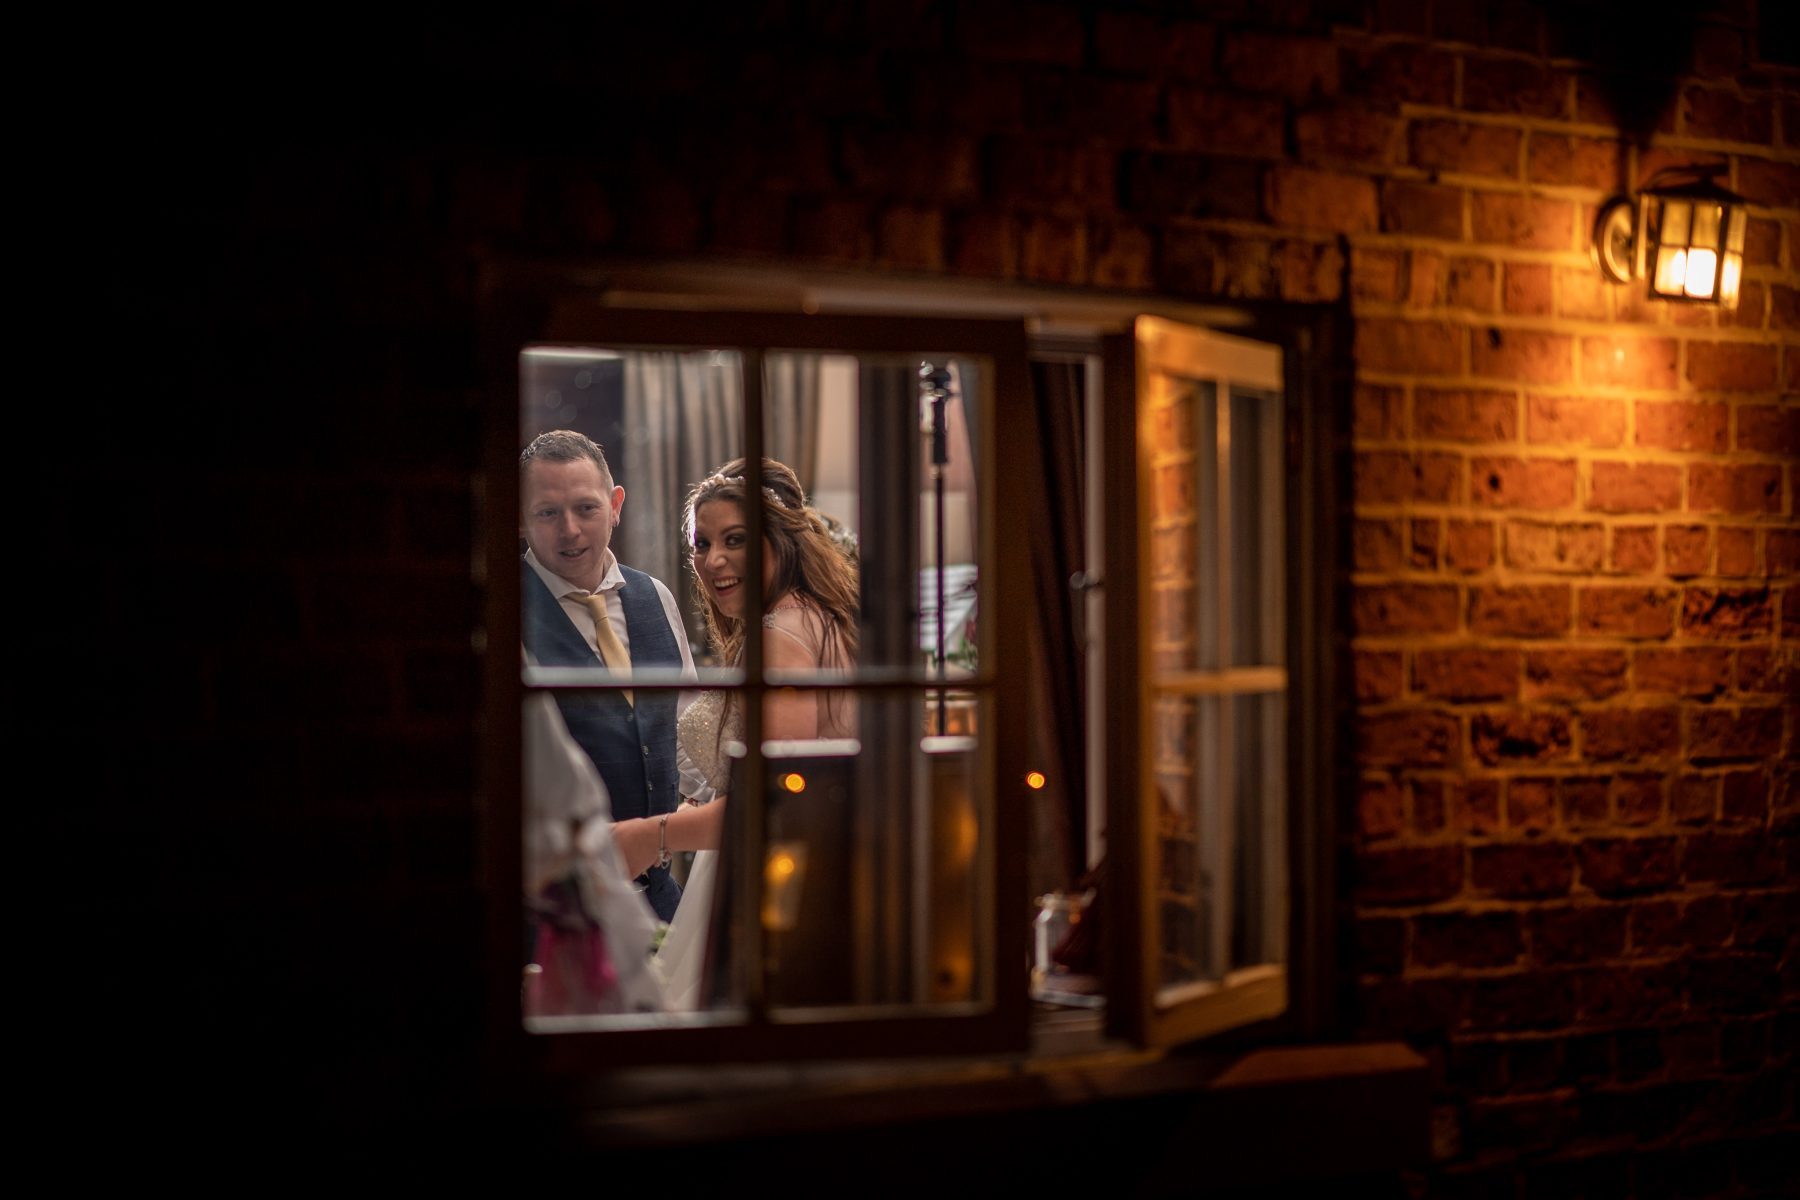 The married couple smile as they look through a window